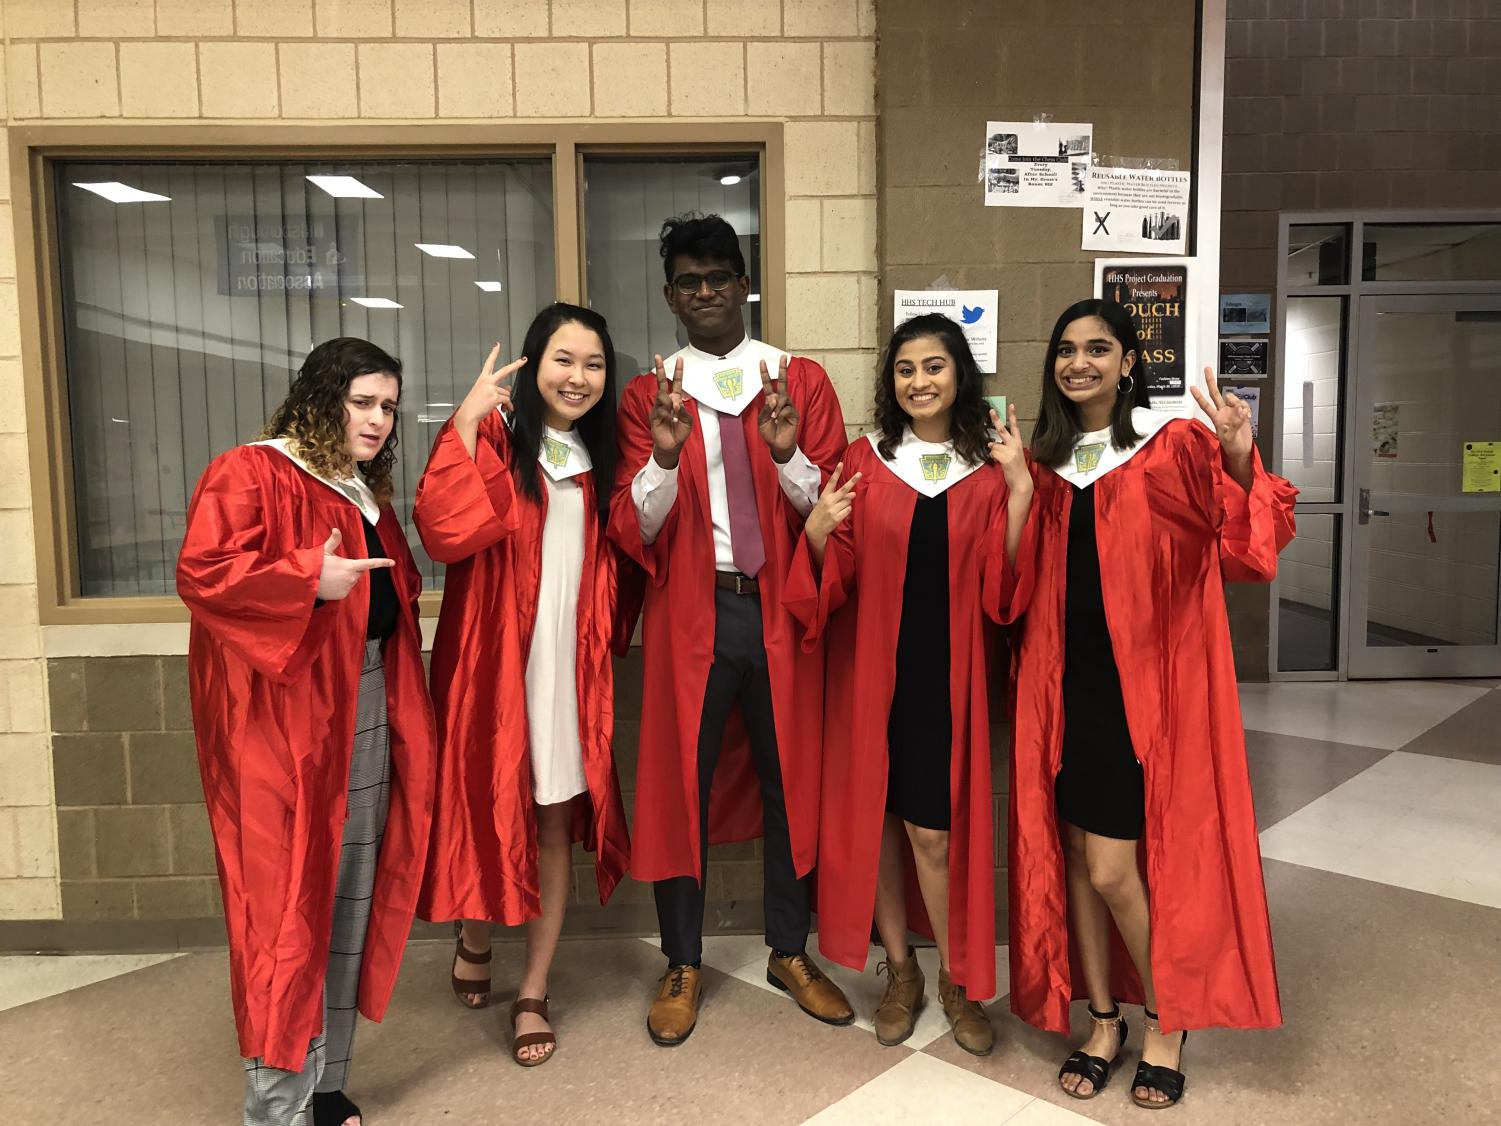 The executive board poses for a humorous picture before the ceremony. From left to right, seniors Lindsey Baum, Hanna Kim, Rupak Stephen, Meghan Patel and Mahitha Vivek.